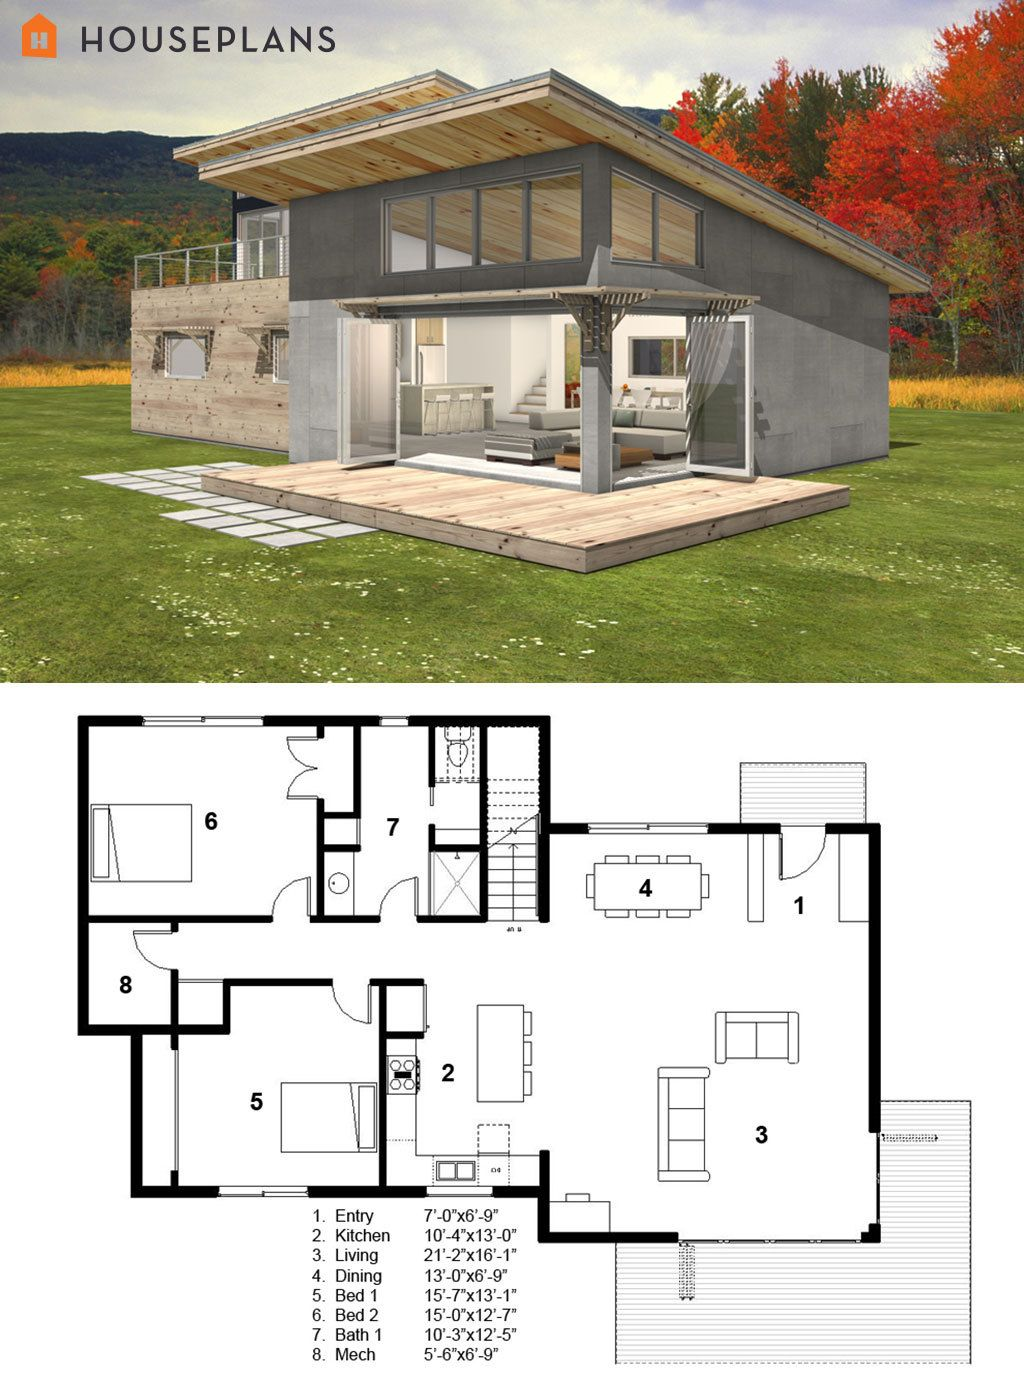 Small Modern cabin house plan by FreeGreen | Energy Efficient House on modern cottage plans, modern craftsman house plans, modern southern house plans, modern small house plans, modern one story house plans, modern small cabin plans, modern home design plans, modern home plans on a budget, modern colonial house plans, modern lakefront house plans, modern vacation home plans, modern country house plans, modern bungalow house plans, modern rustic home exteriors, modern luxury home plans, modern home kits, modern lake house plans, modern narrow lot house plans, modern open floor plans, modern tudor house plans,